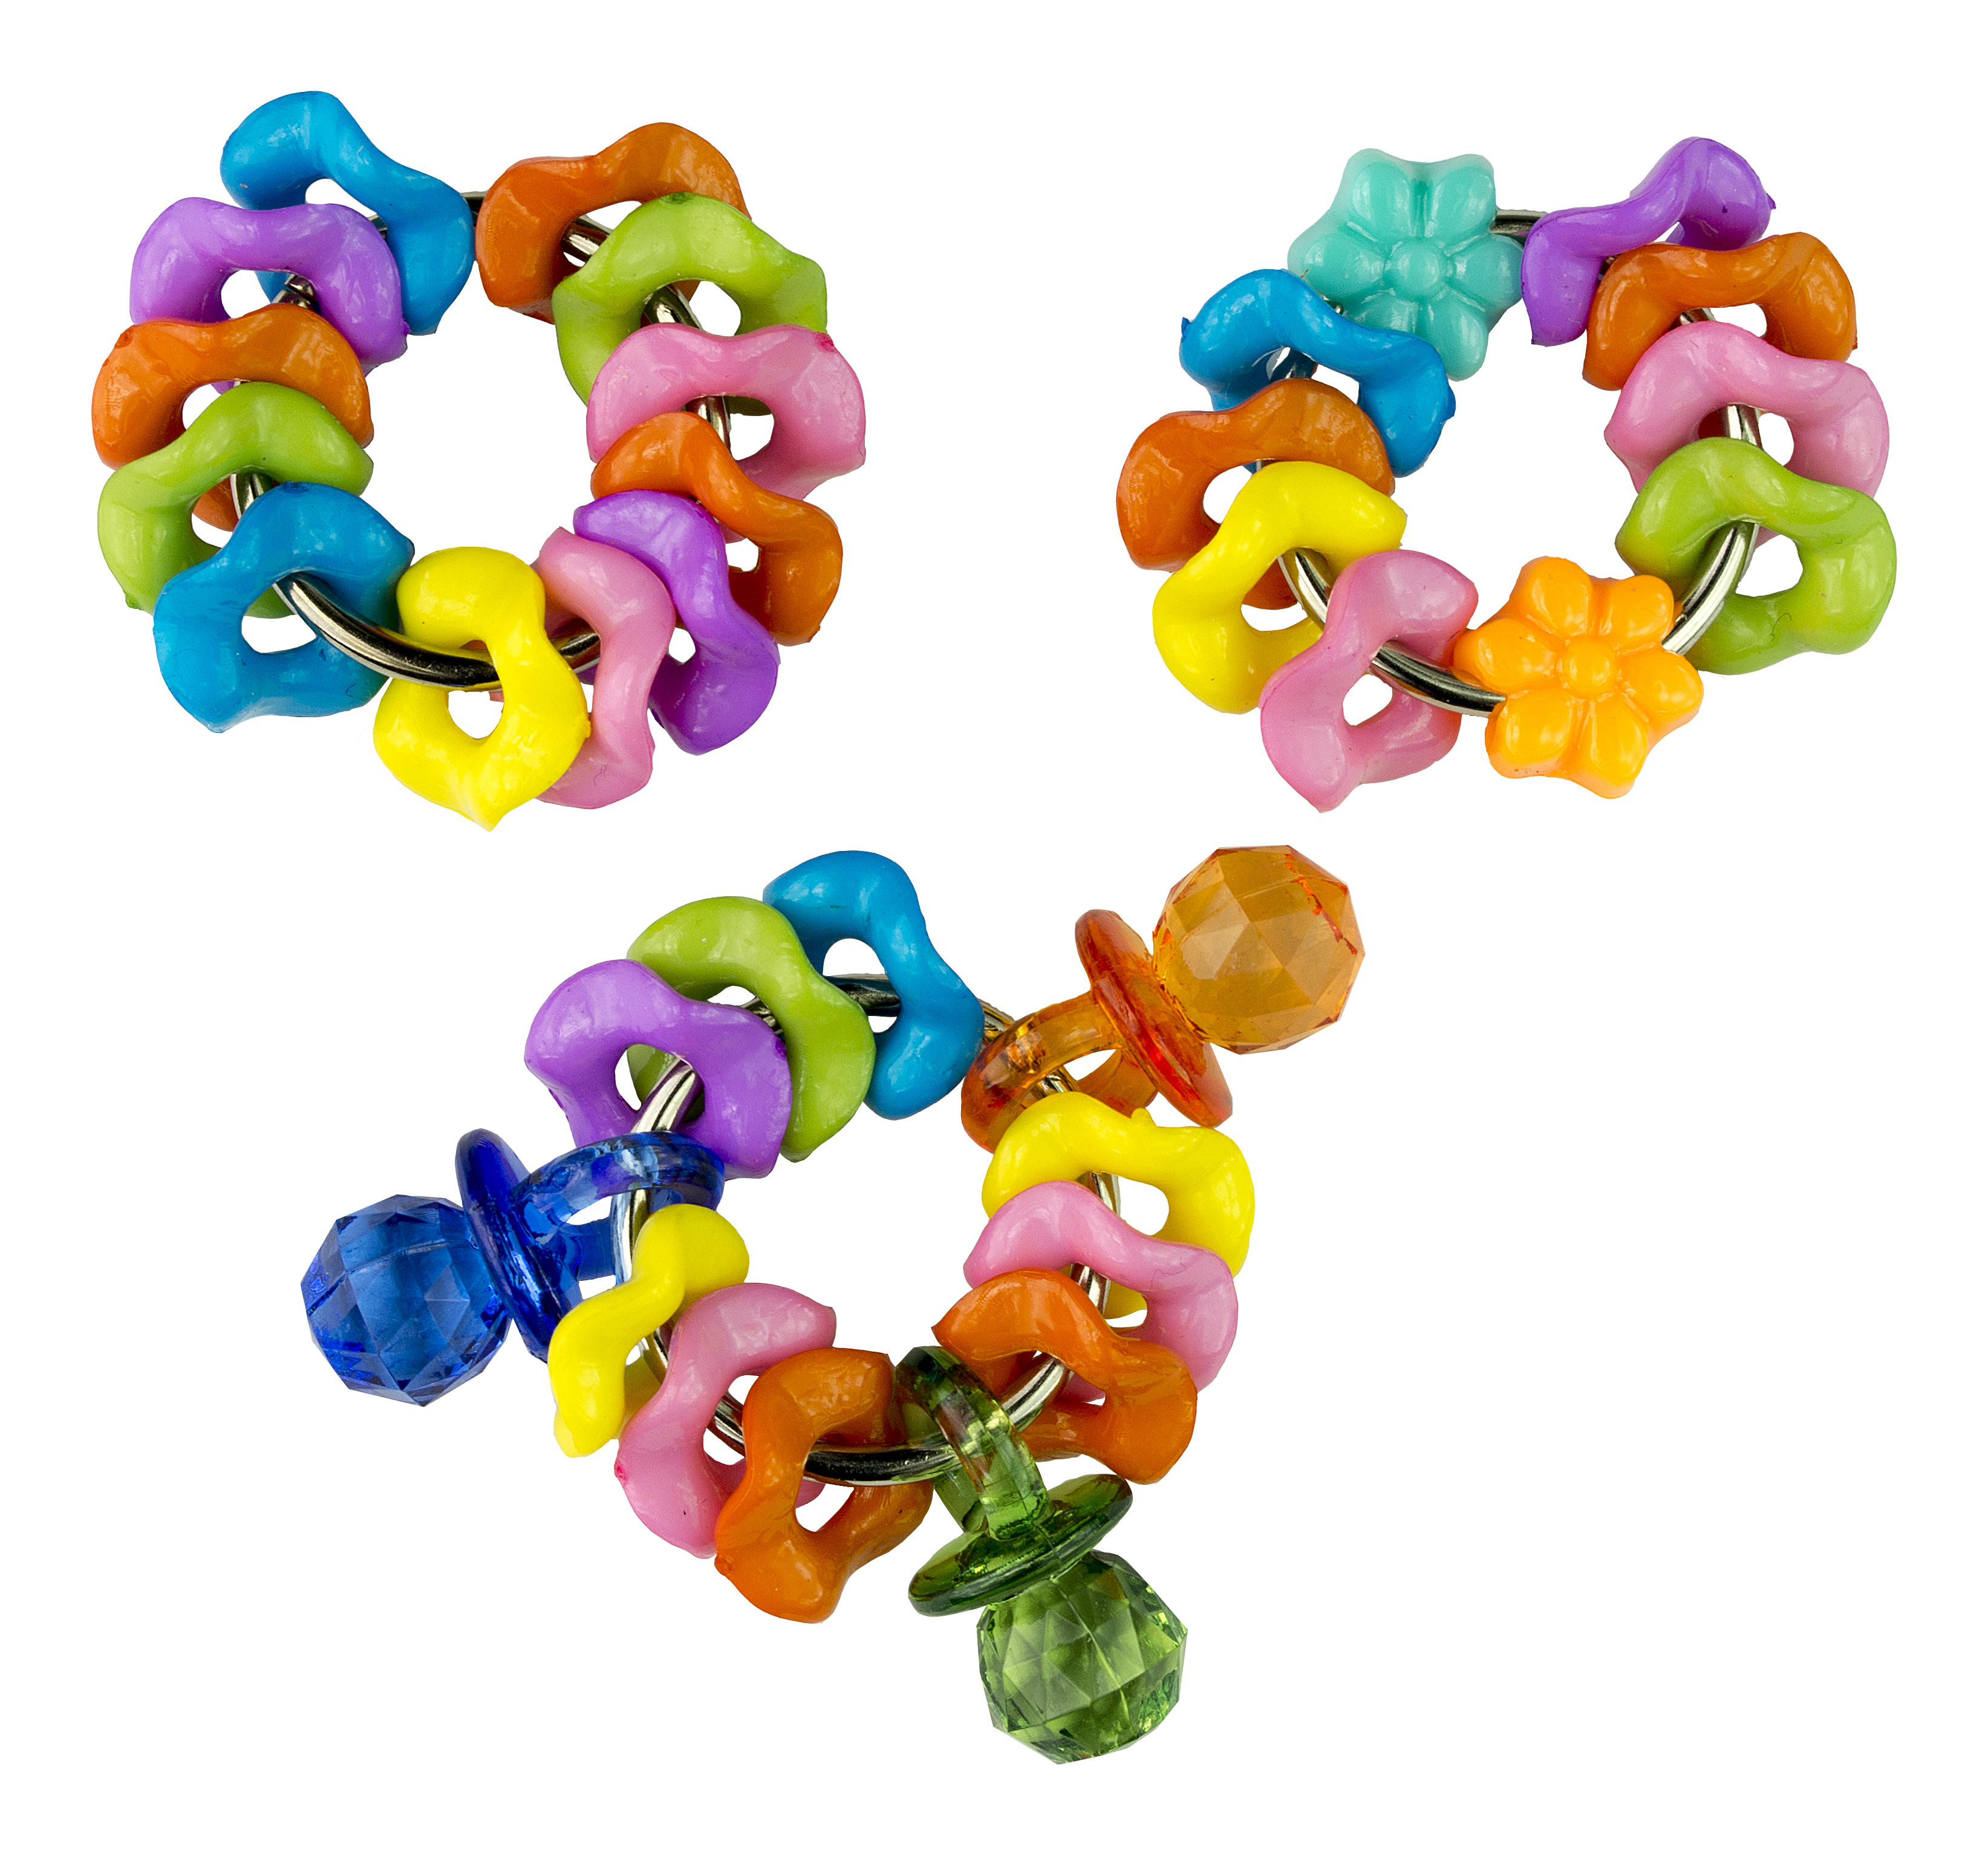 AC 187H WAVY WIGGLY HAND TOYS (3)